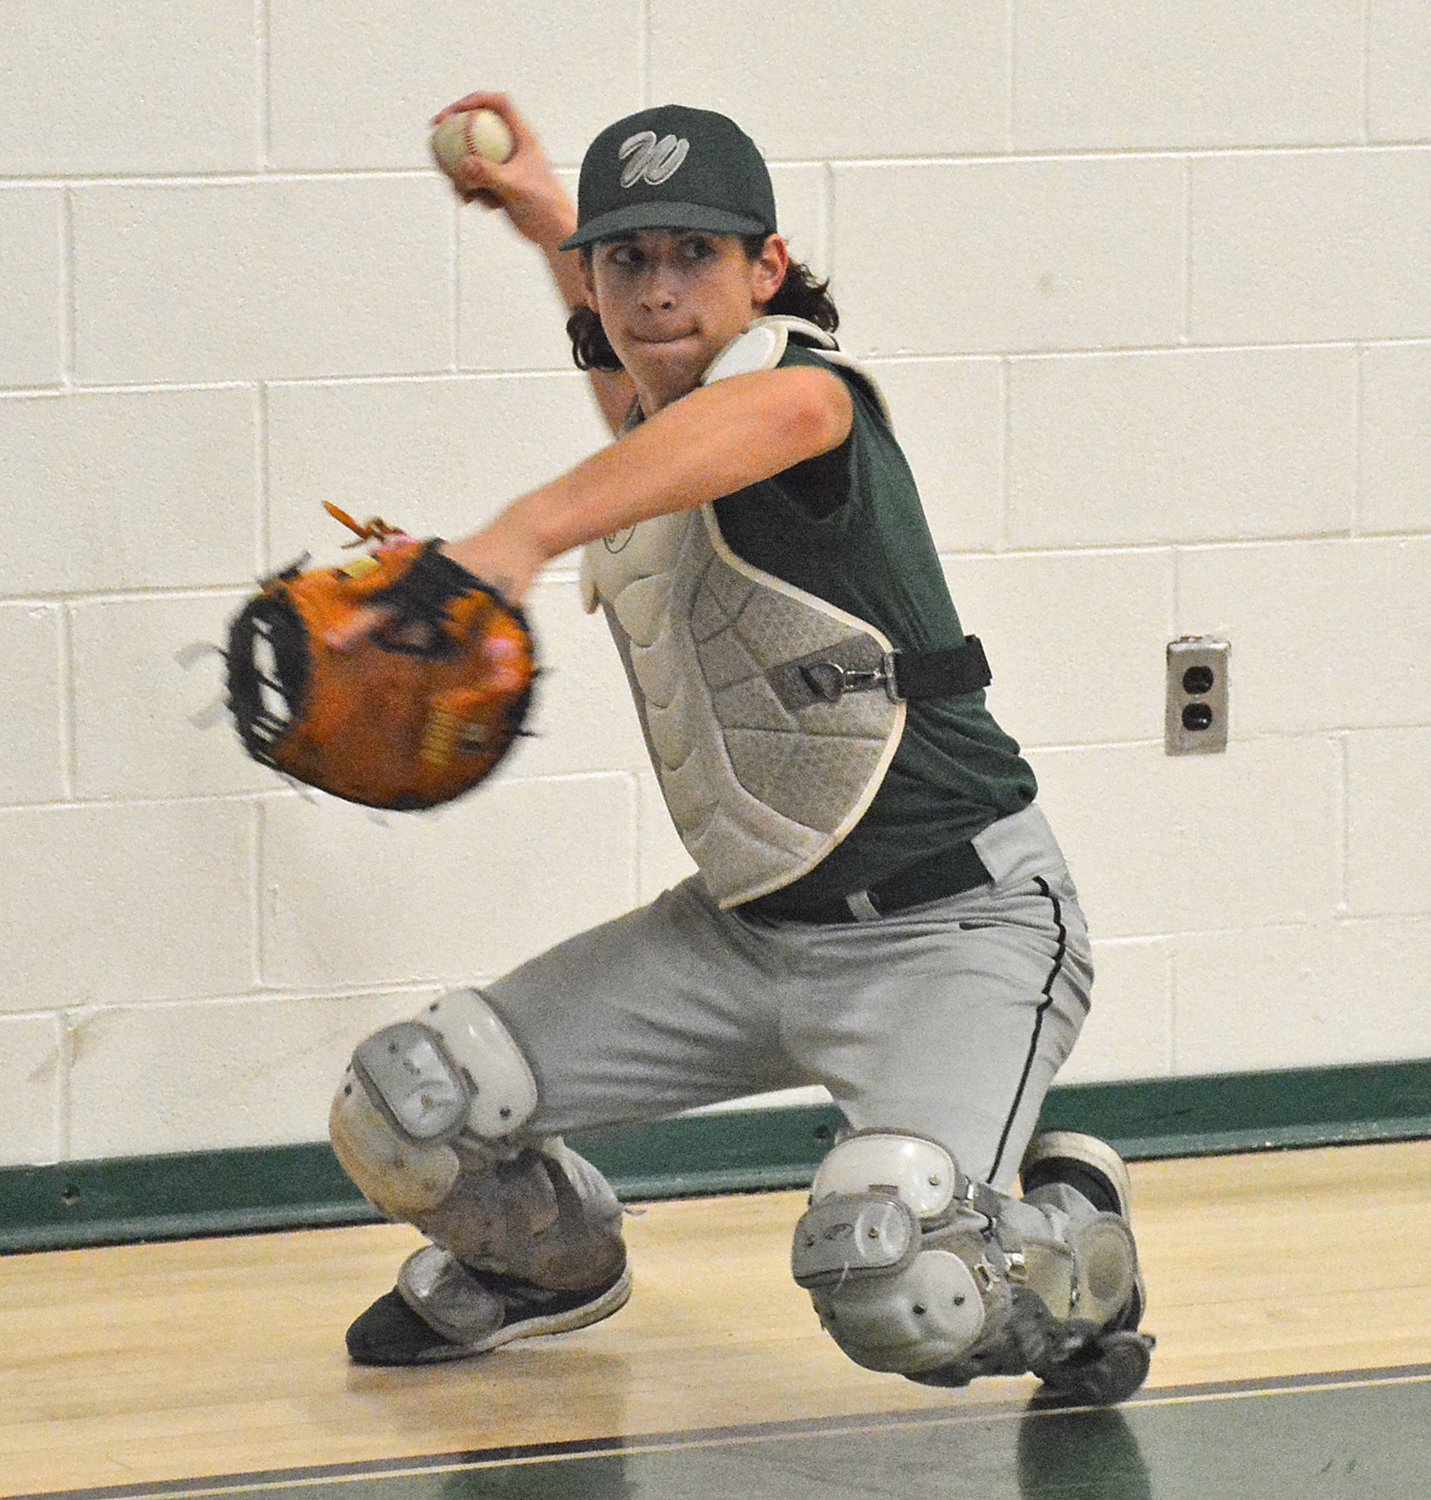 WORKING BEHIND THE PLATE — Westmoreland catcher Caleb Miller practices in the gym of Westmoreland High School during a recent workout. The freshman is one of five returning players for the Bulldogs.